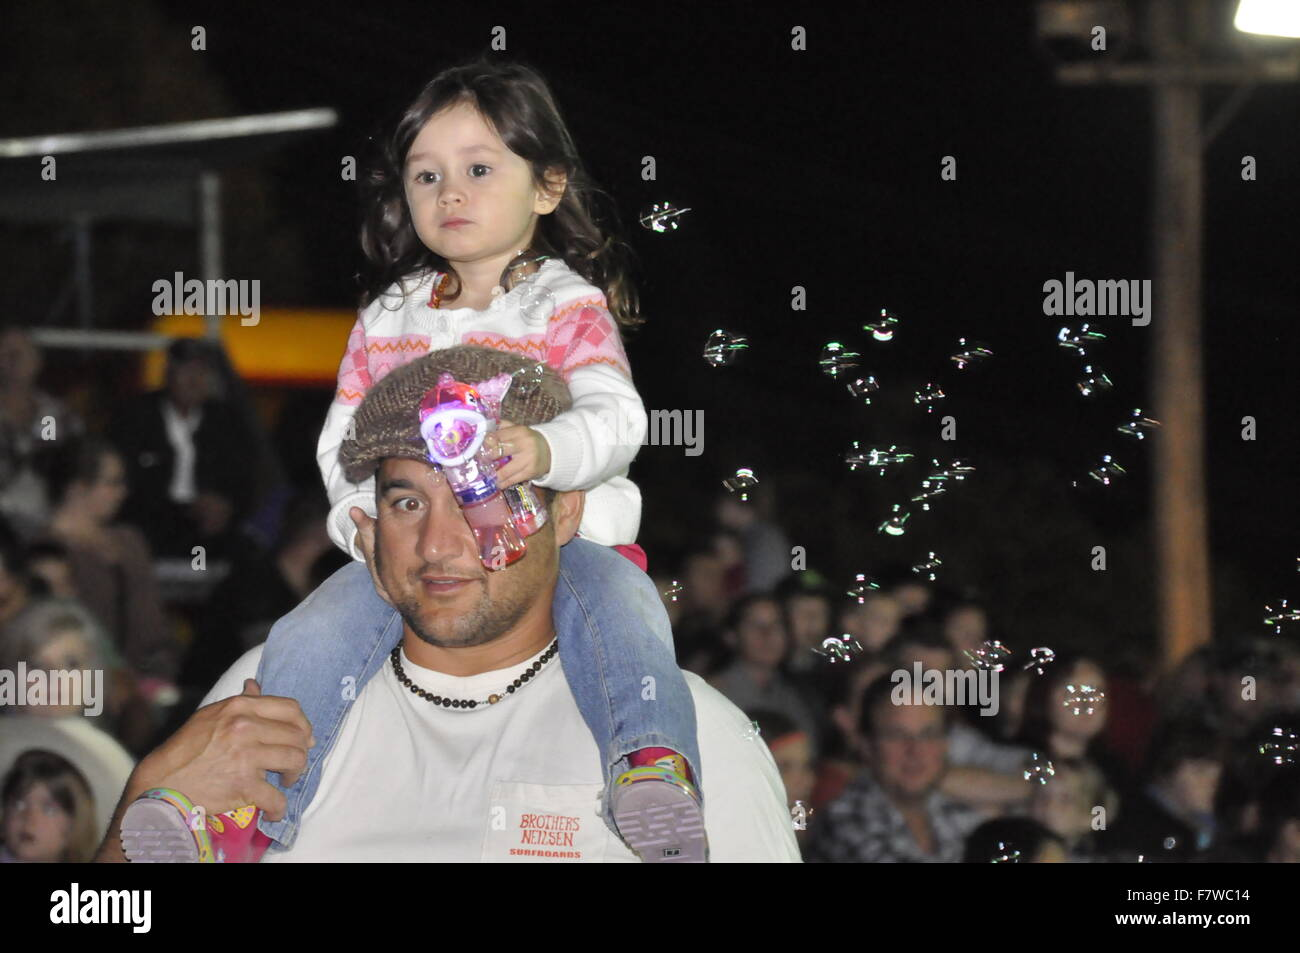 YOUNG GIRL ON DADS SHOULDERS - Stock Image